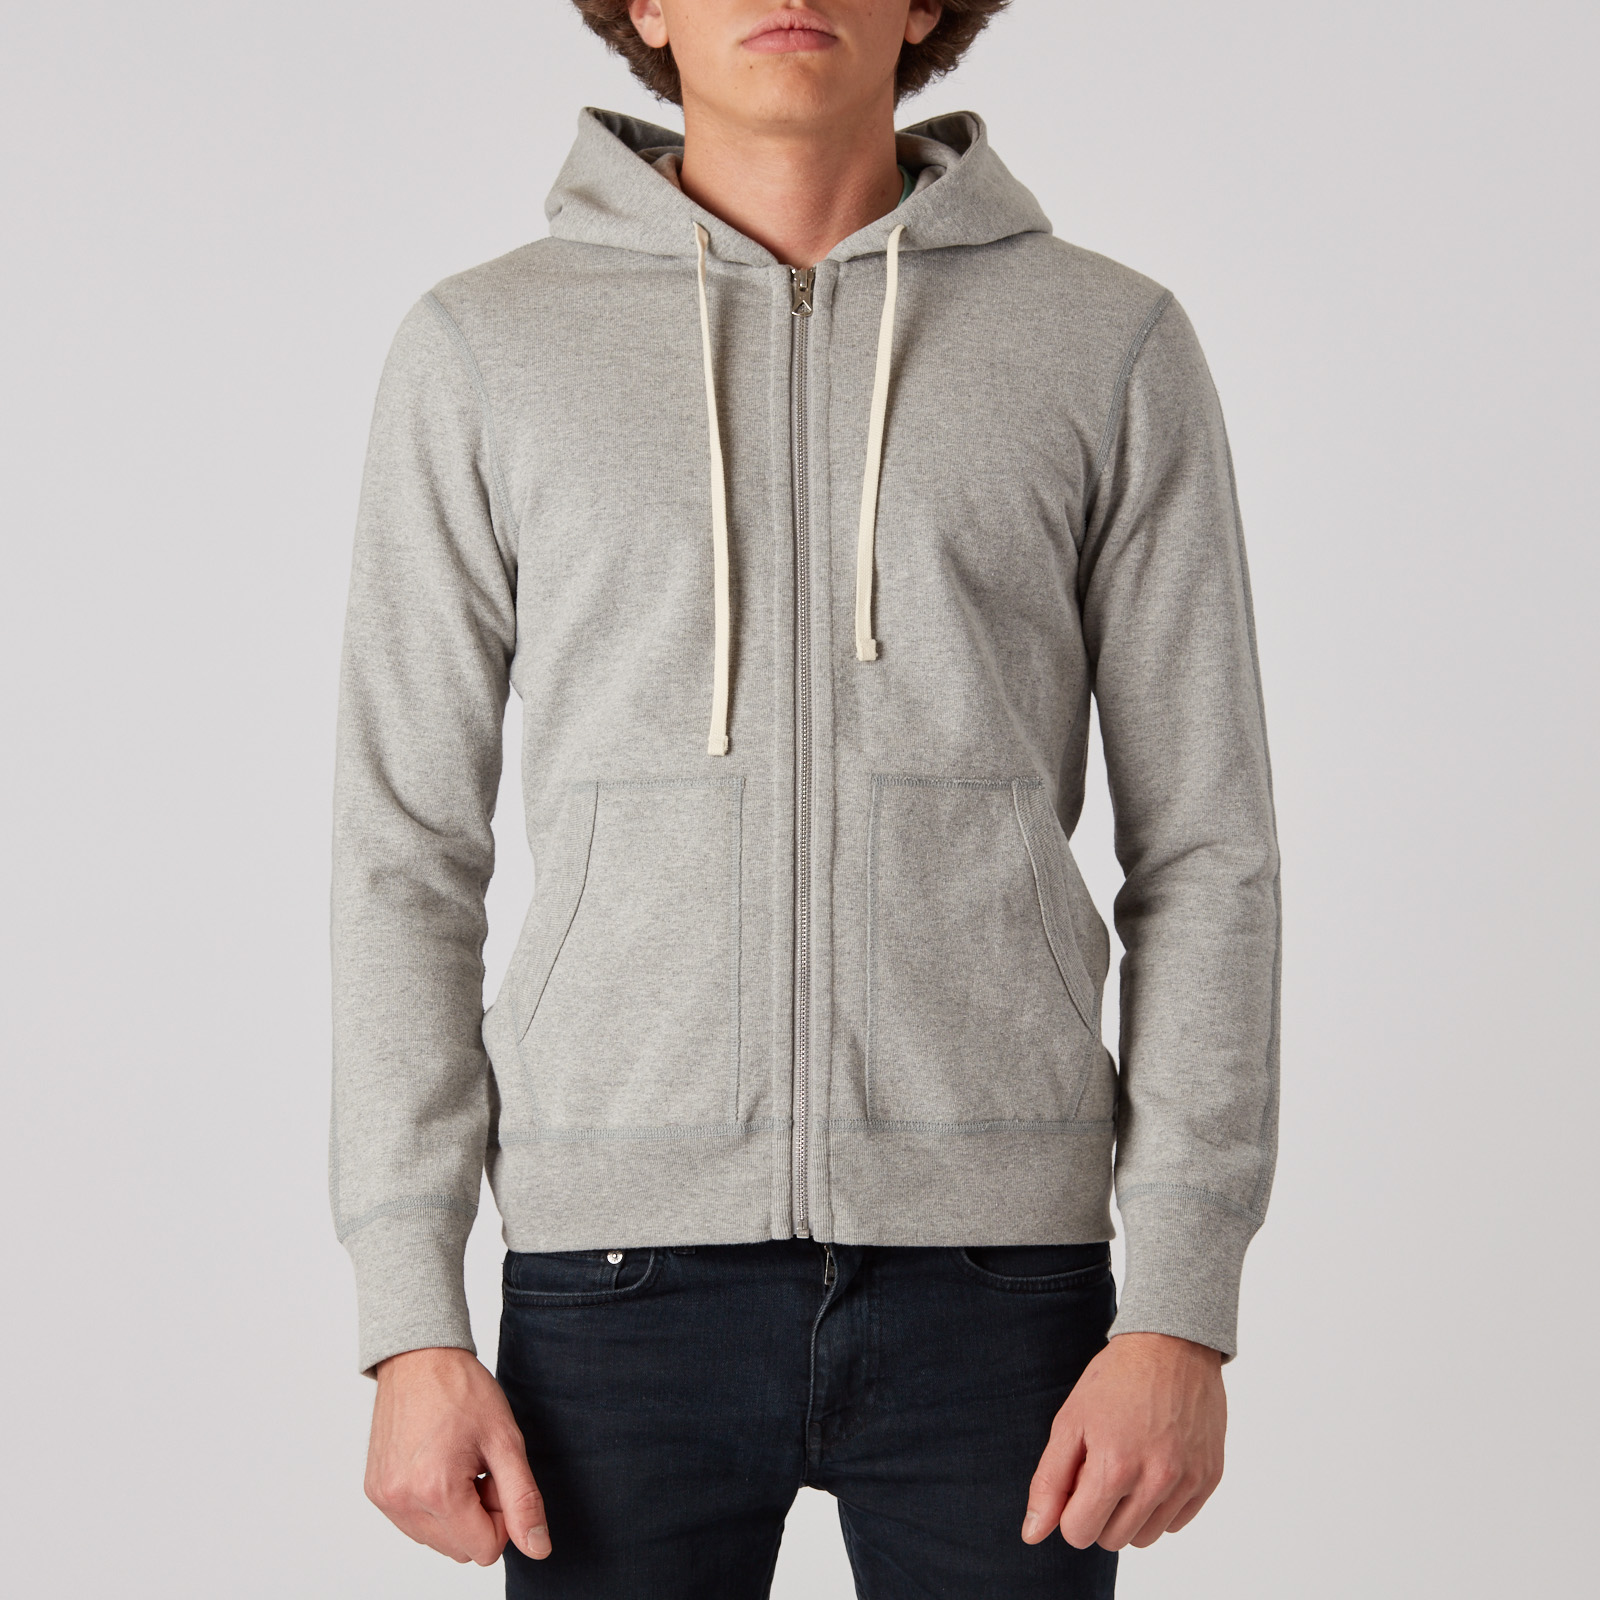 Reigning Champ Heavyweight Fleece L S Full Zip Hoody - Rc-3260-4 ... 26ea83d35